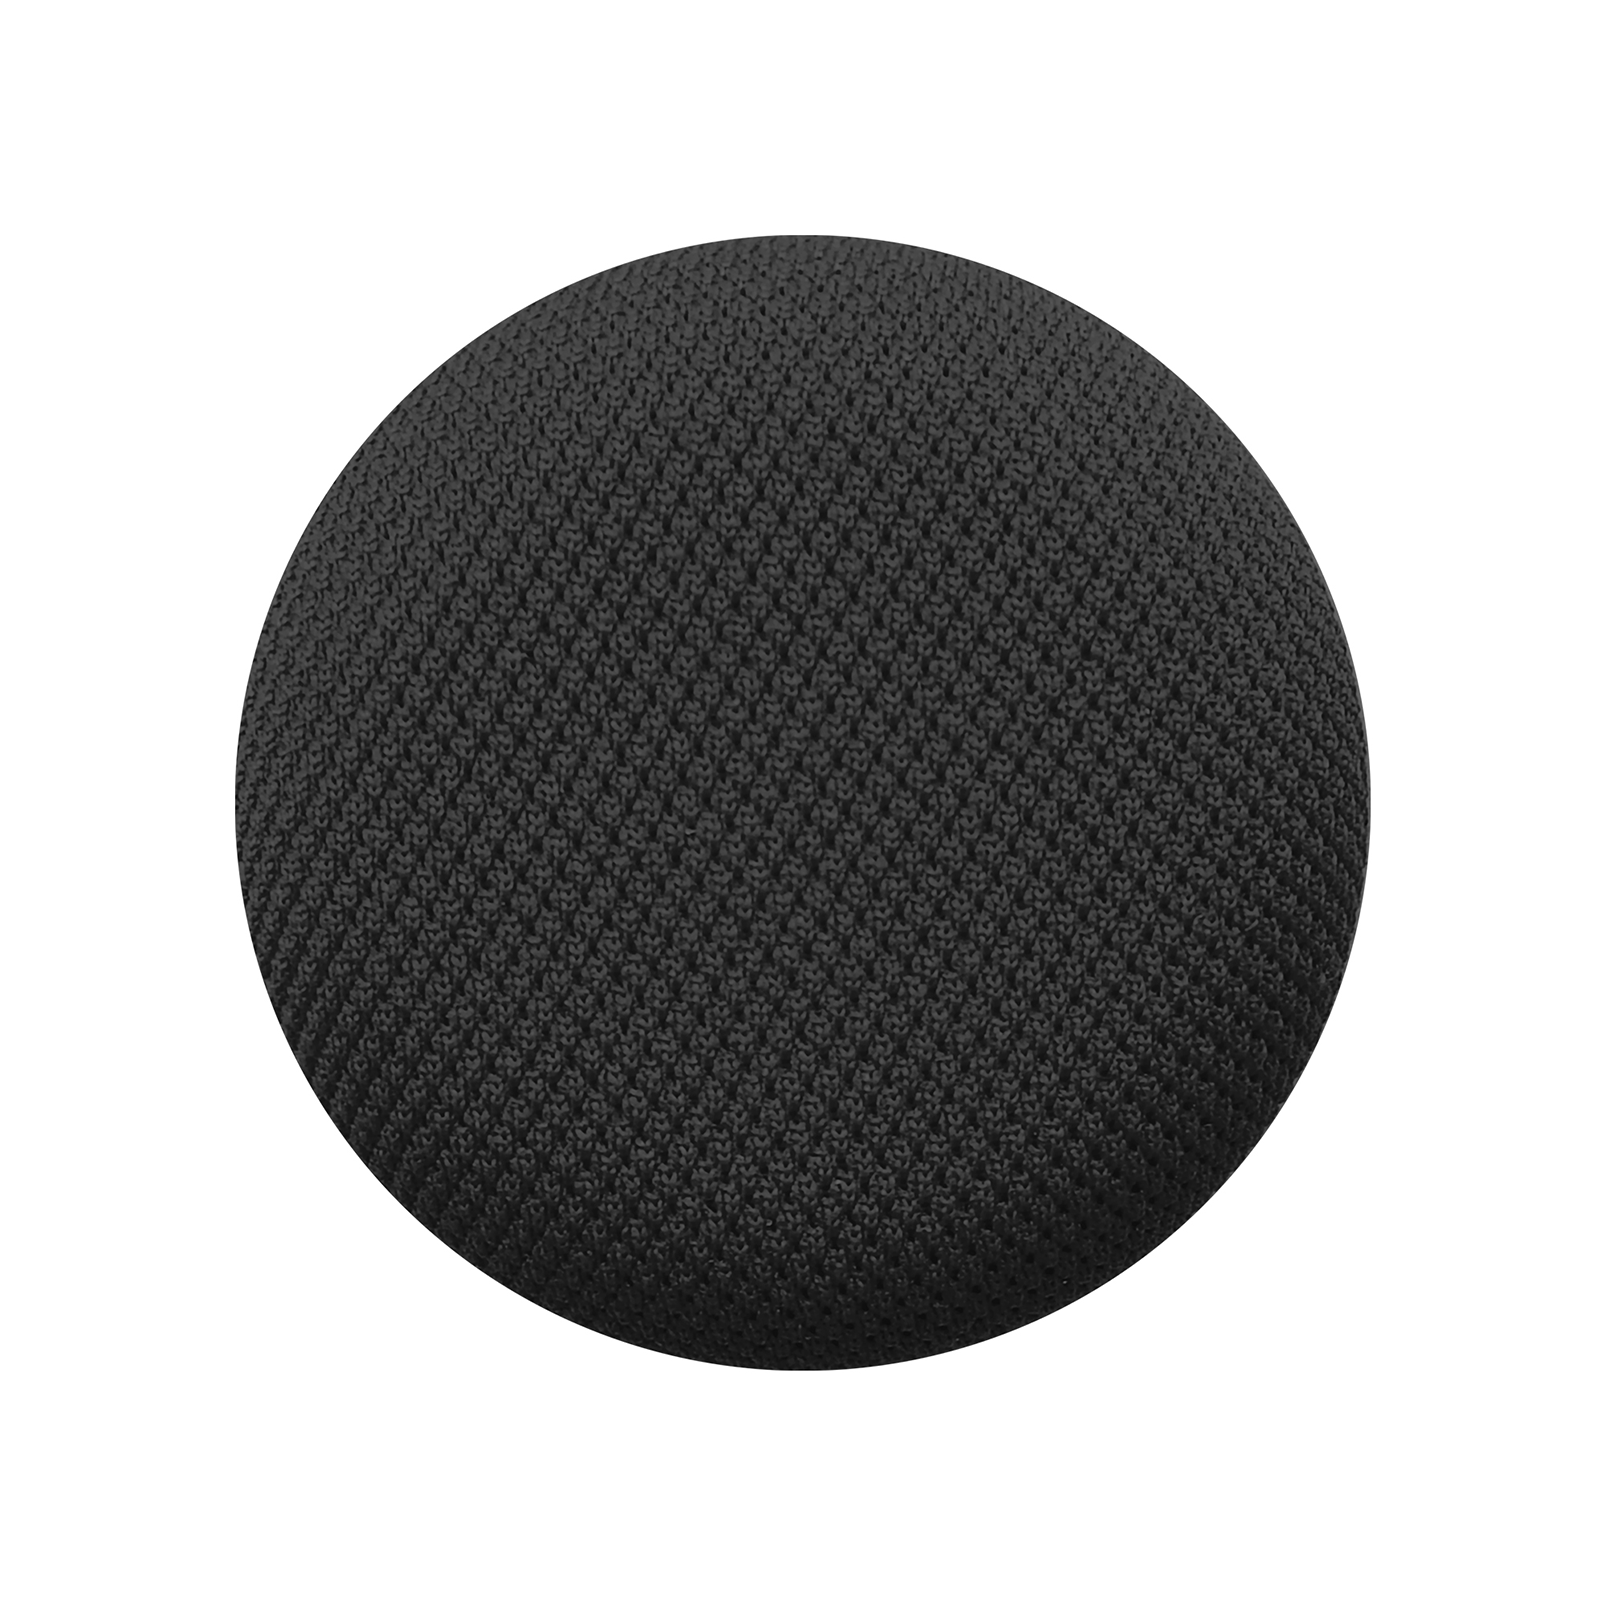 INFINITY FUZE PINT - Black - Portable Wireless Speakers - Front